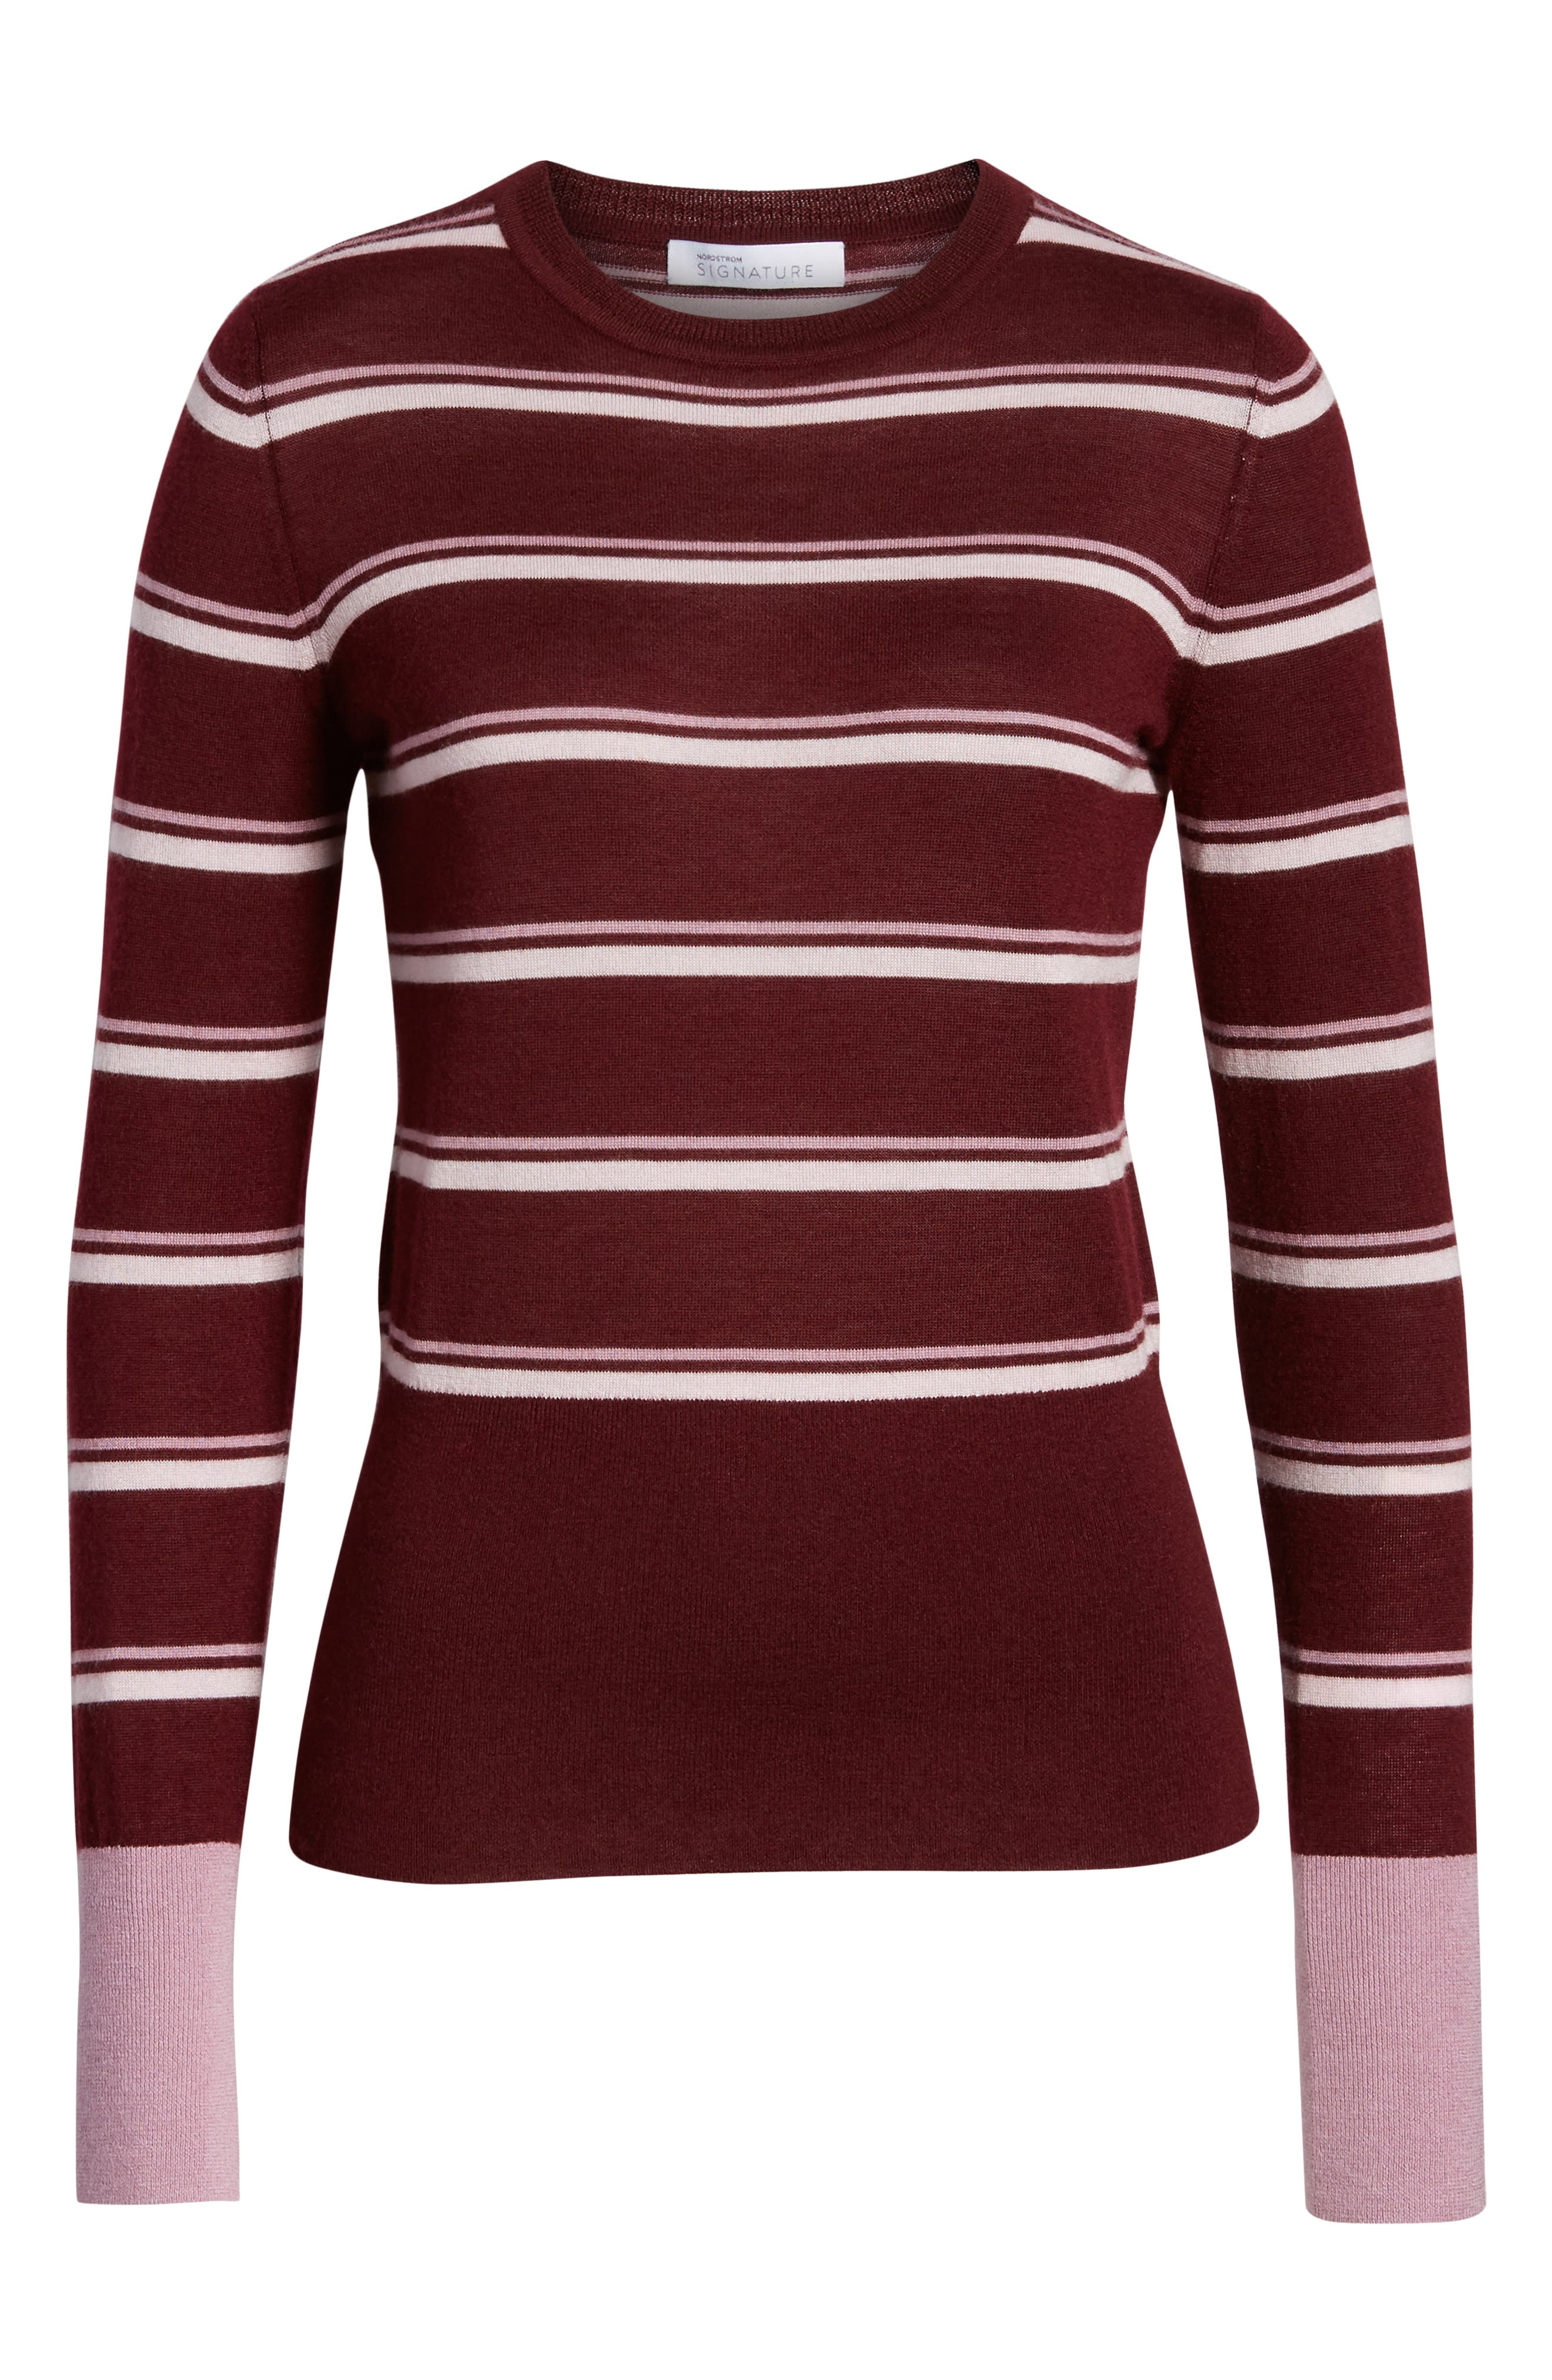 Stripe Cashmere Sweater,                             Alternate thumbnail 6, color,                             BURGUNDY STEP STRIPE